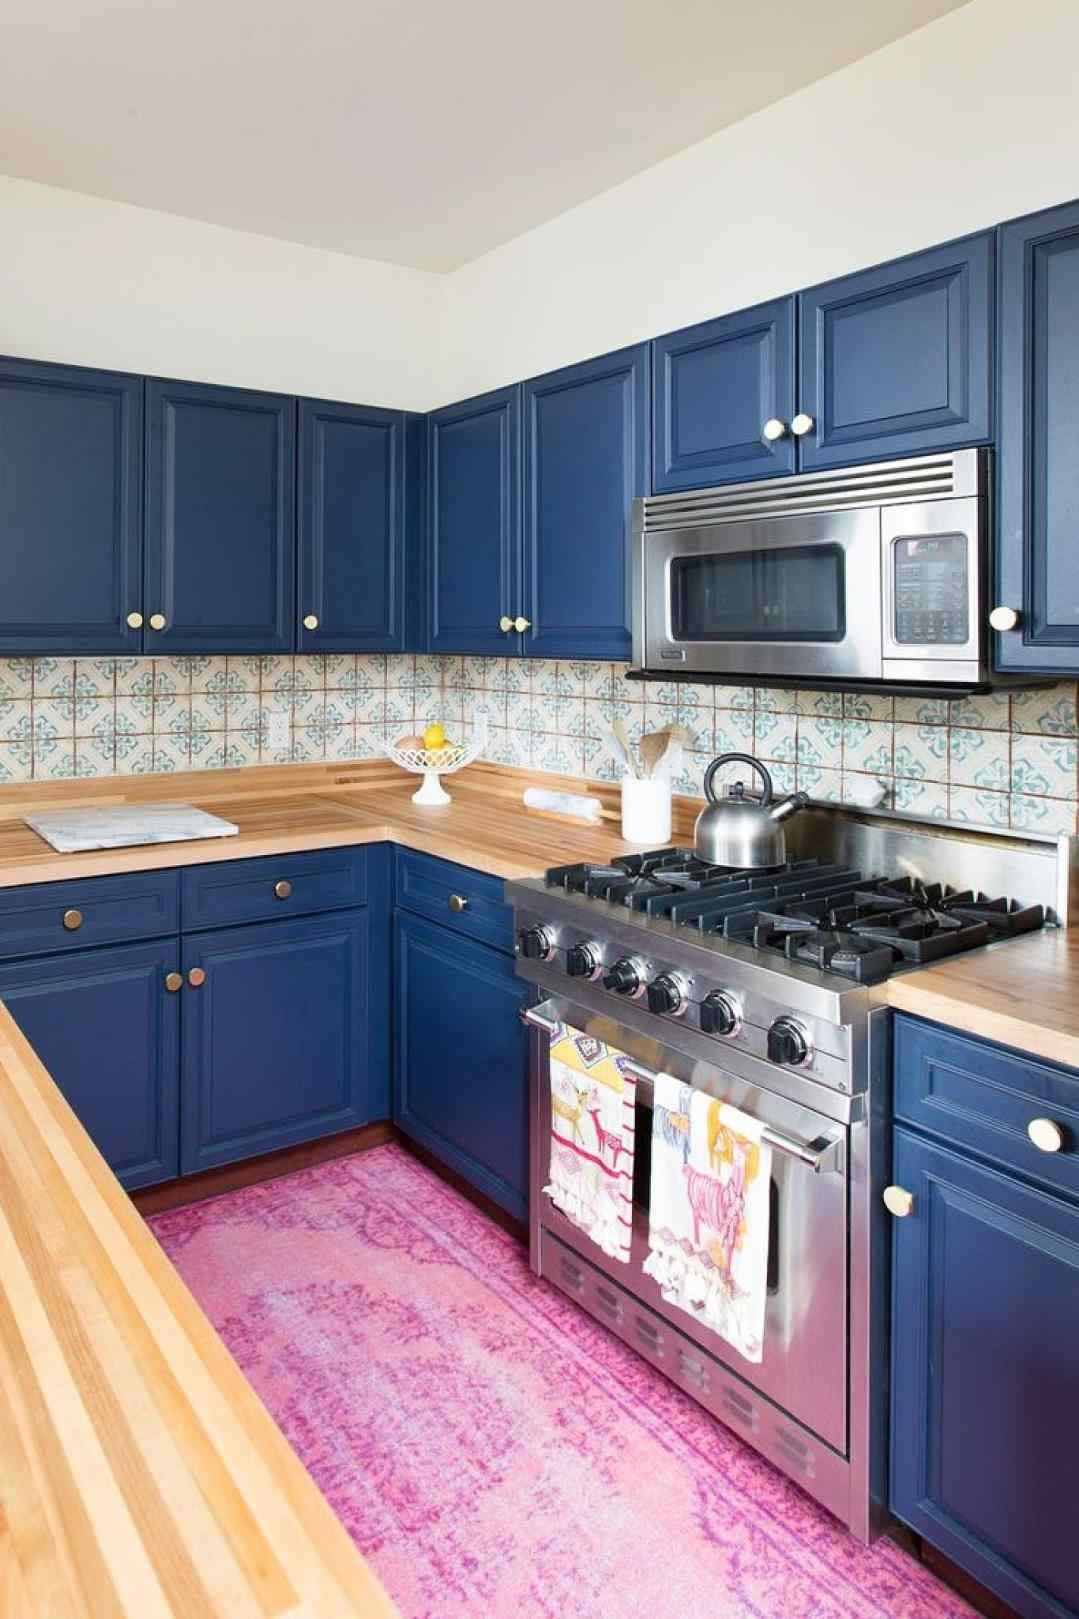 Impressive Ideas Decorate Kitchen Houzz Cobalt Blue Kitchen Decor Small Kitchens Cobalt Blue